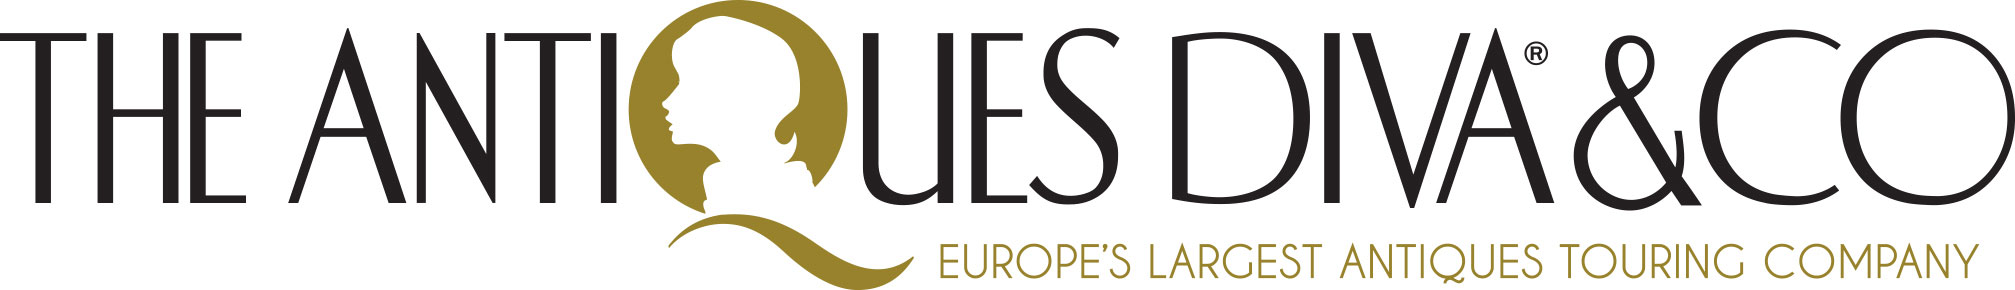 Europe's Largest Antiques Touring Company